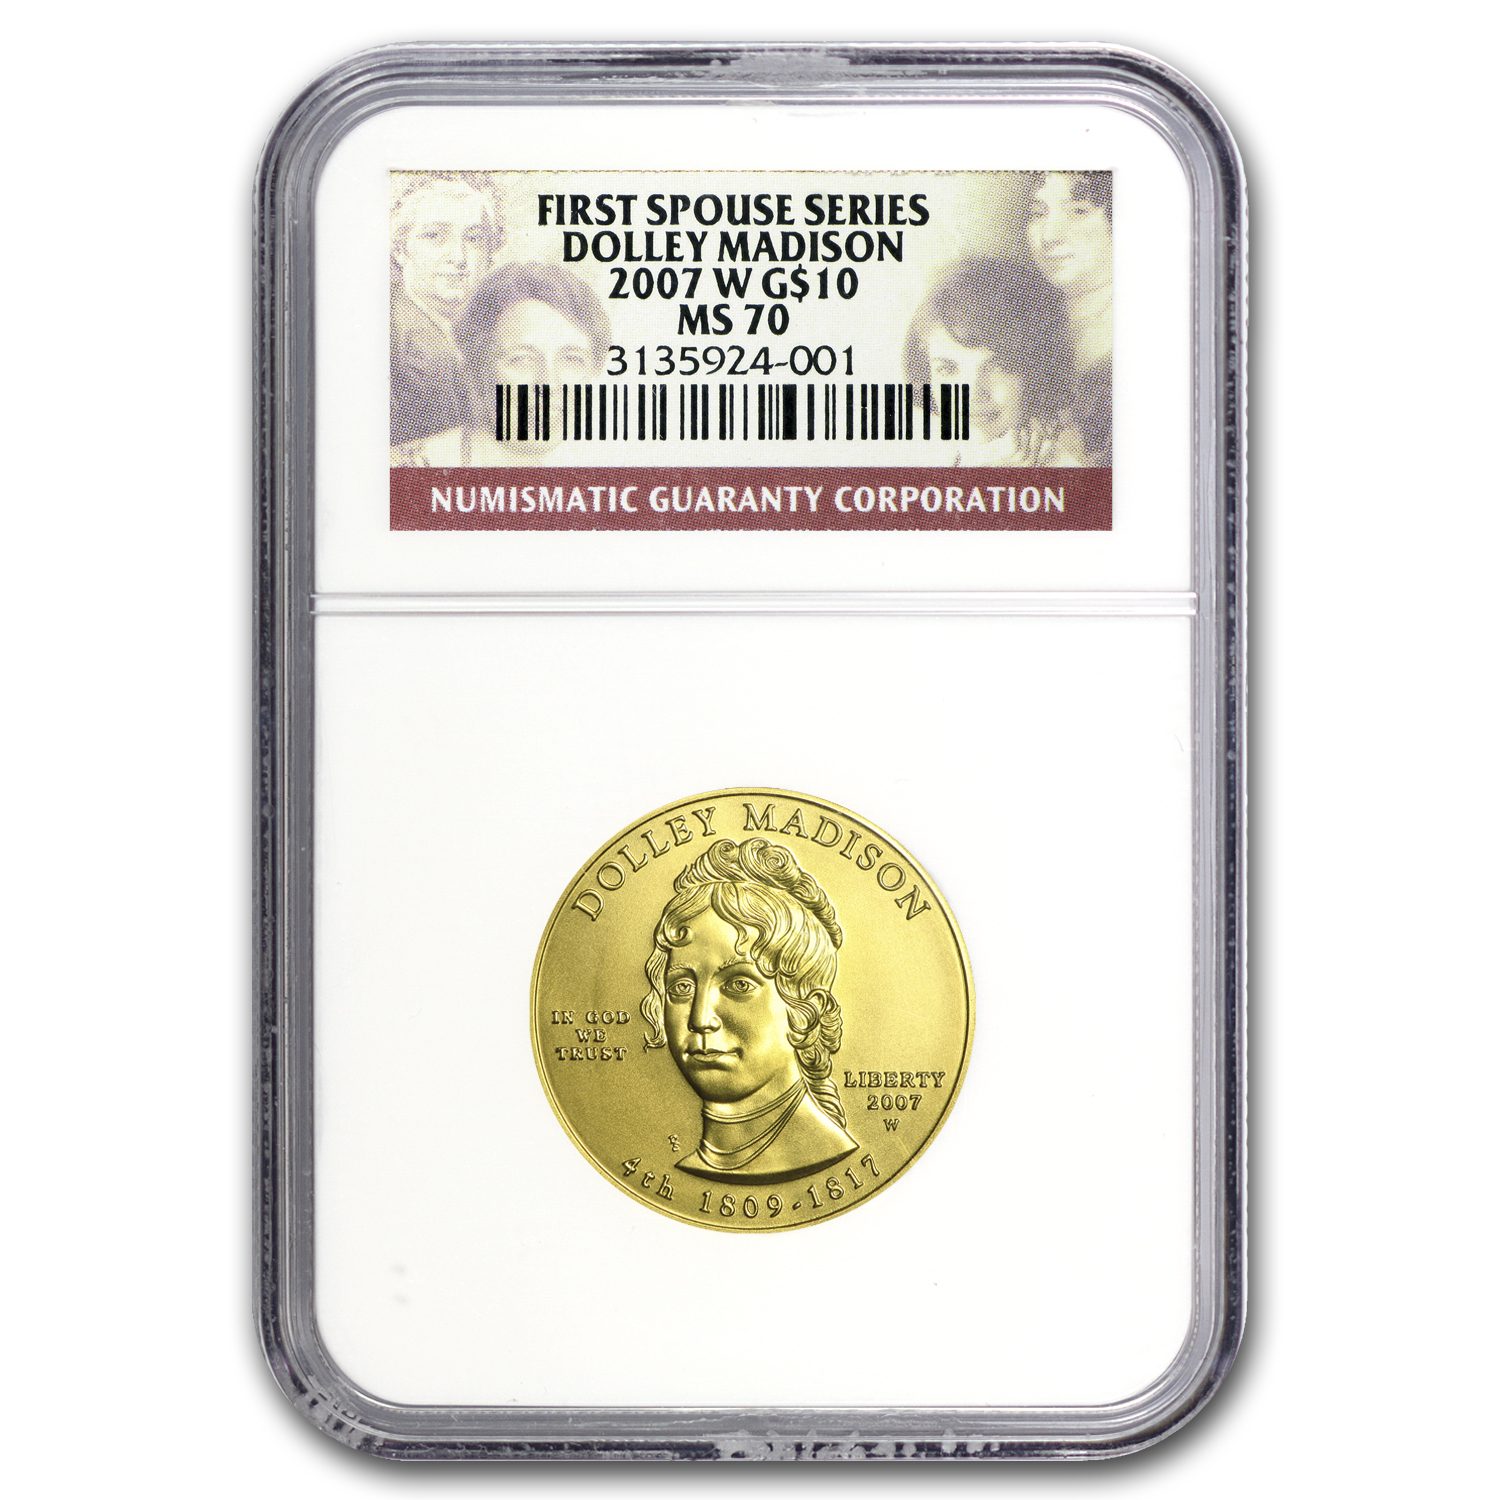 2007-W 1/2 oz Gold Dolley Madison MS-70 NGC